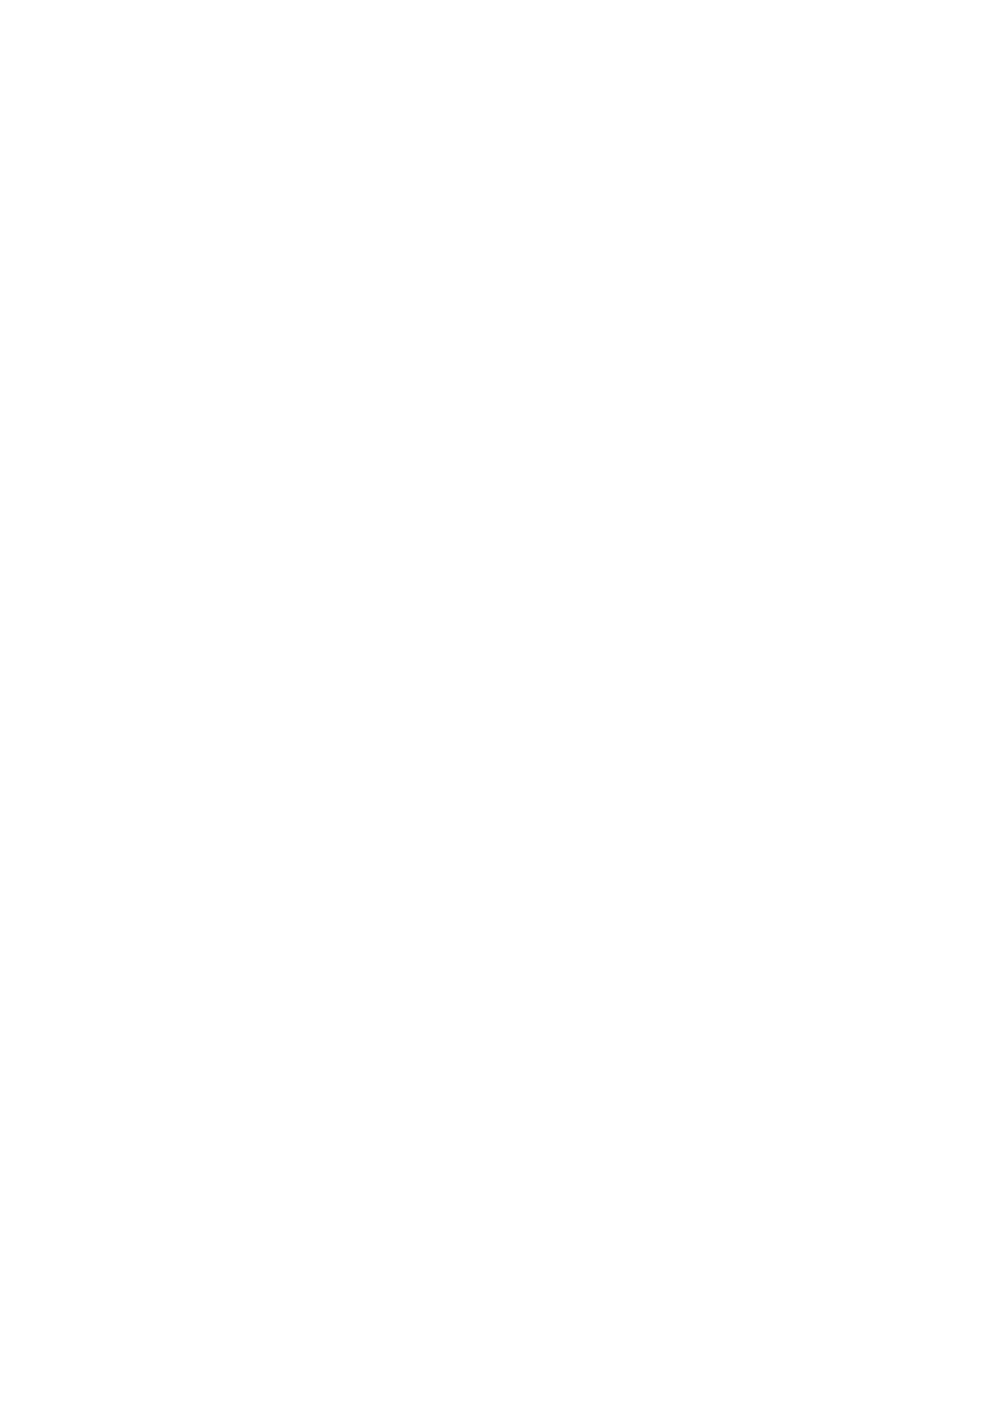 hearing testing_circle icon white outline_with text-01.png